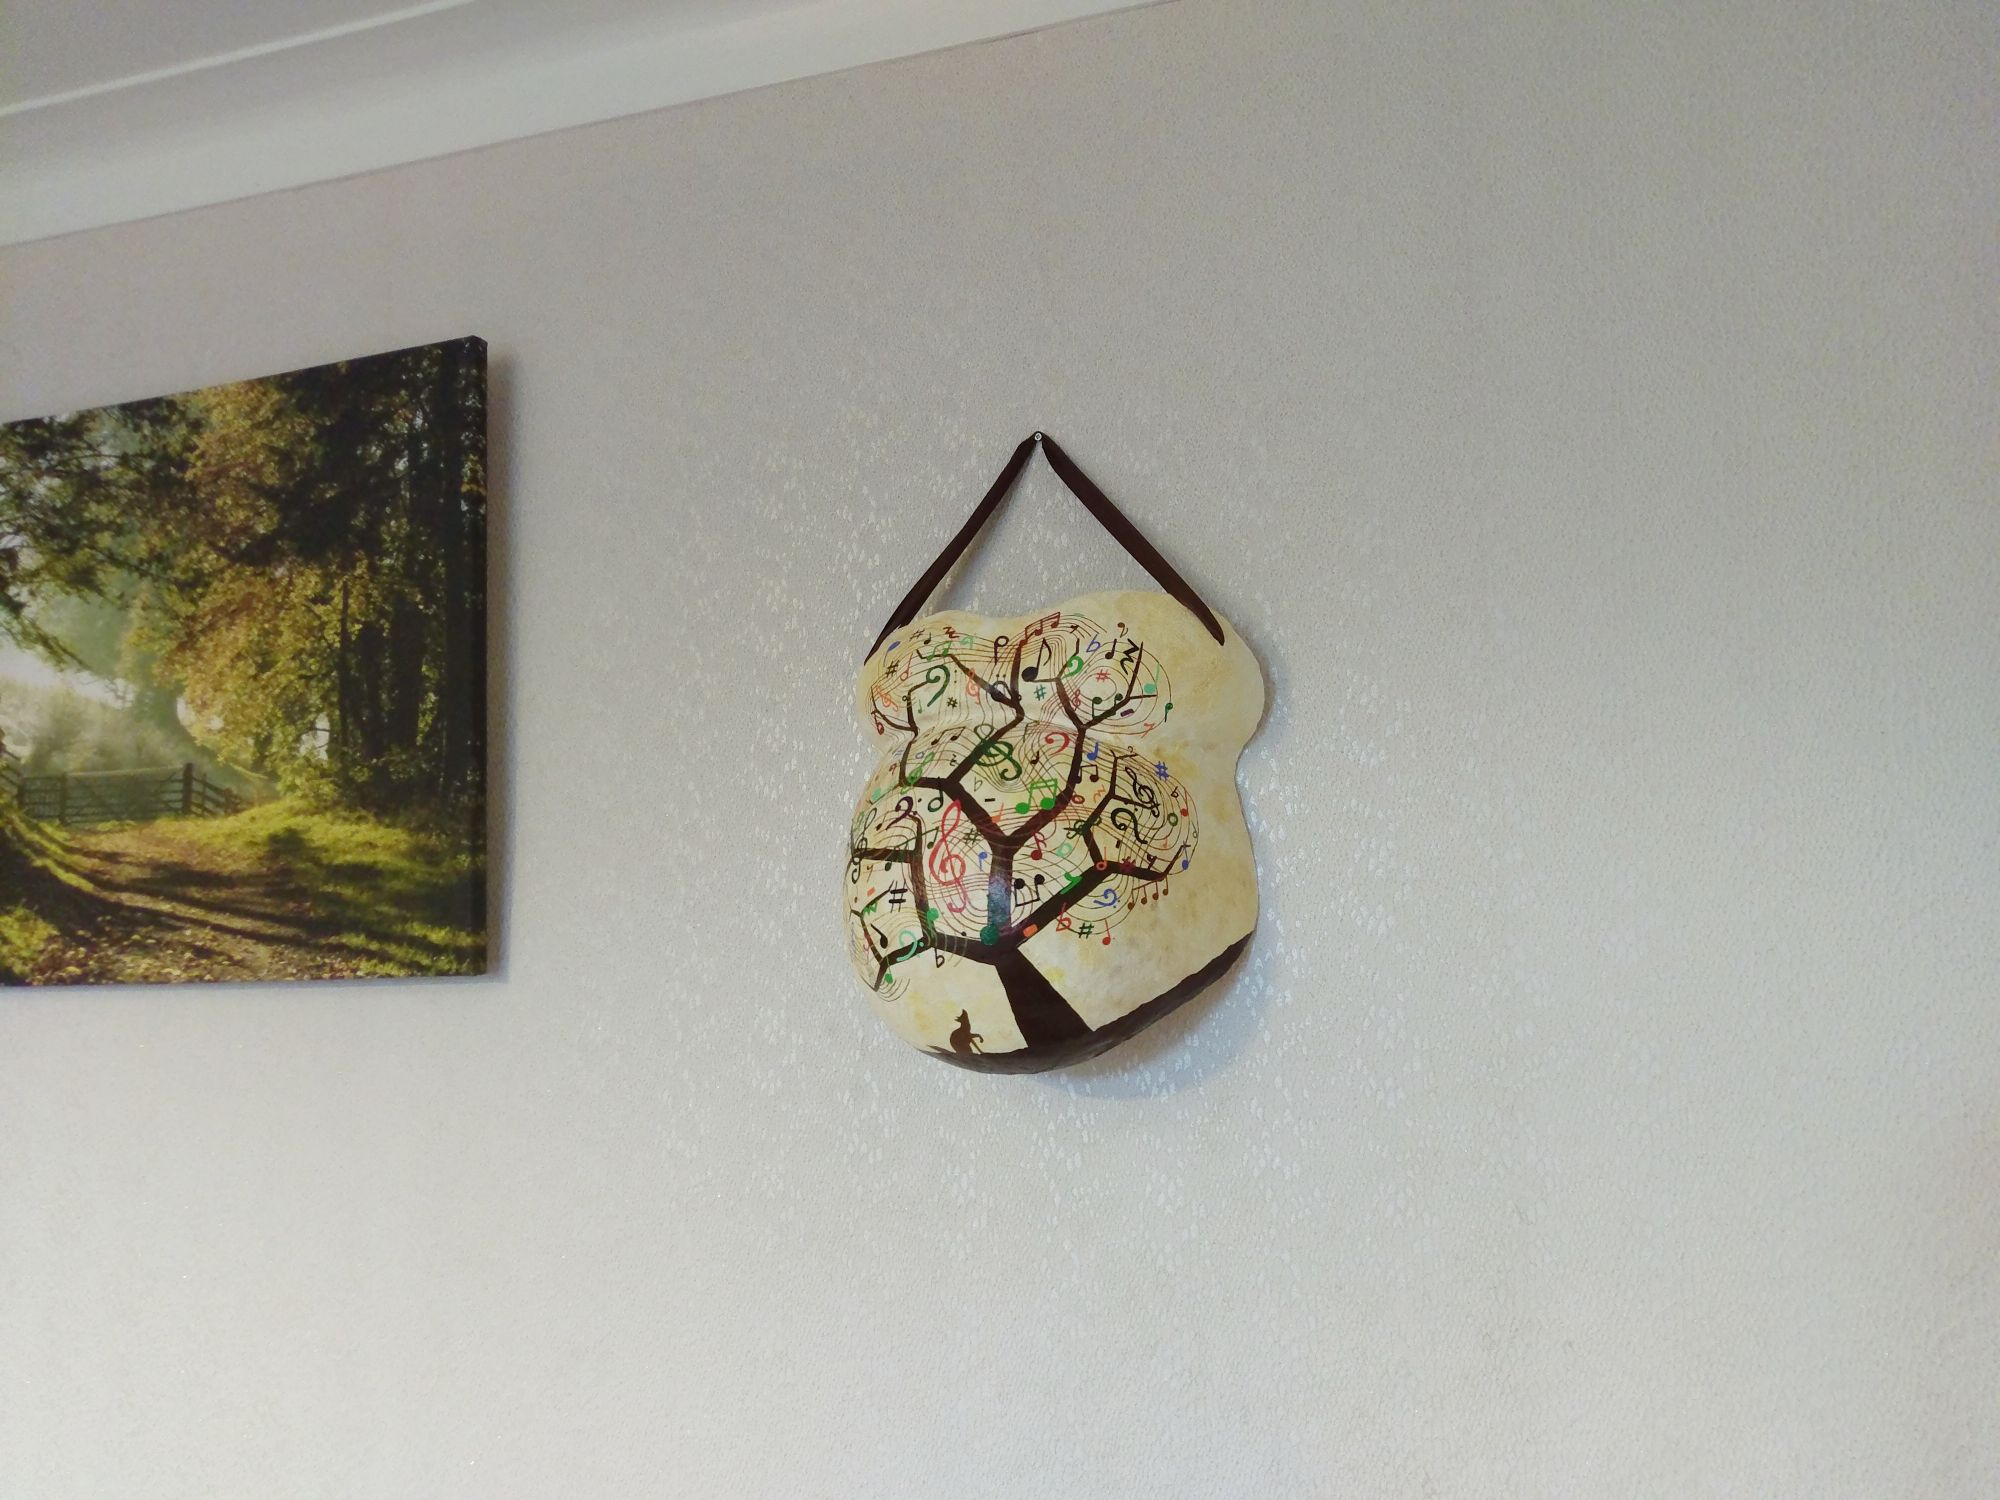 Image of a painted belly cast hanging on a wall.